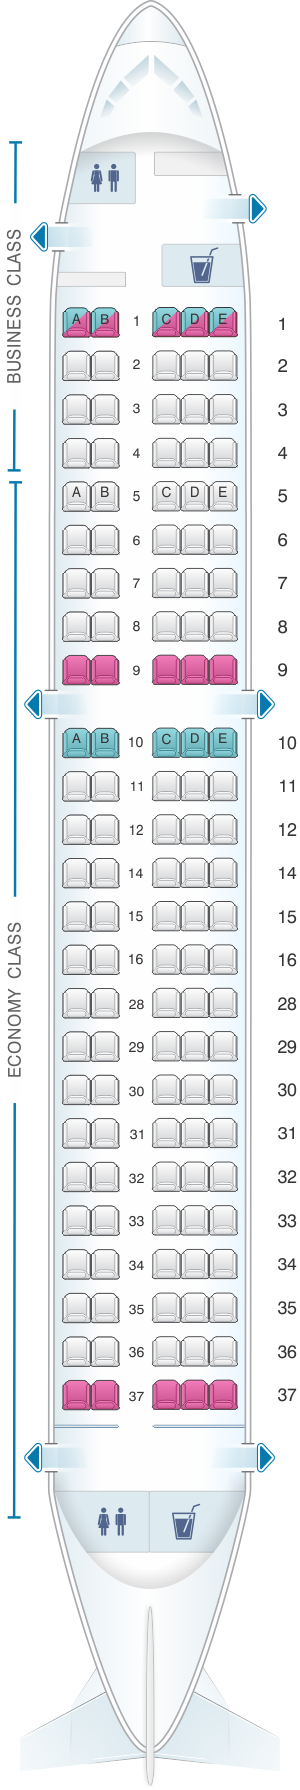 Seat map for SWISS Bombardier CS100